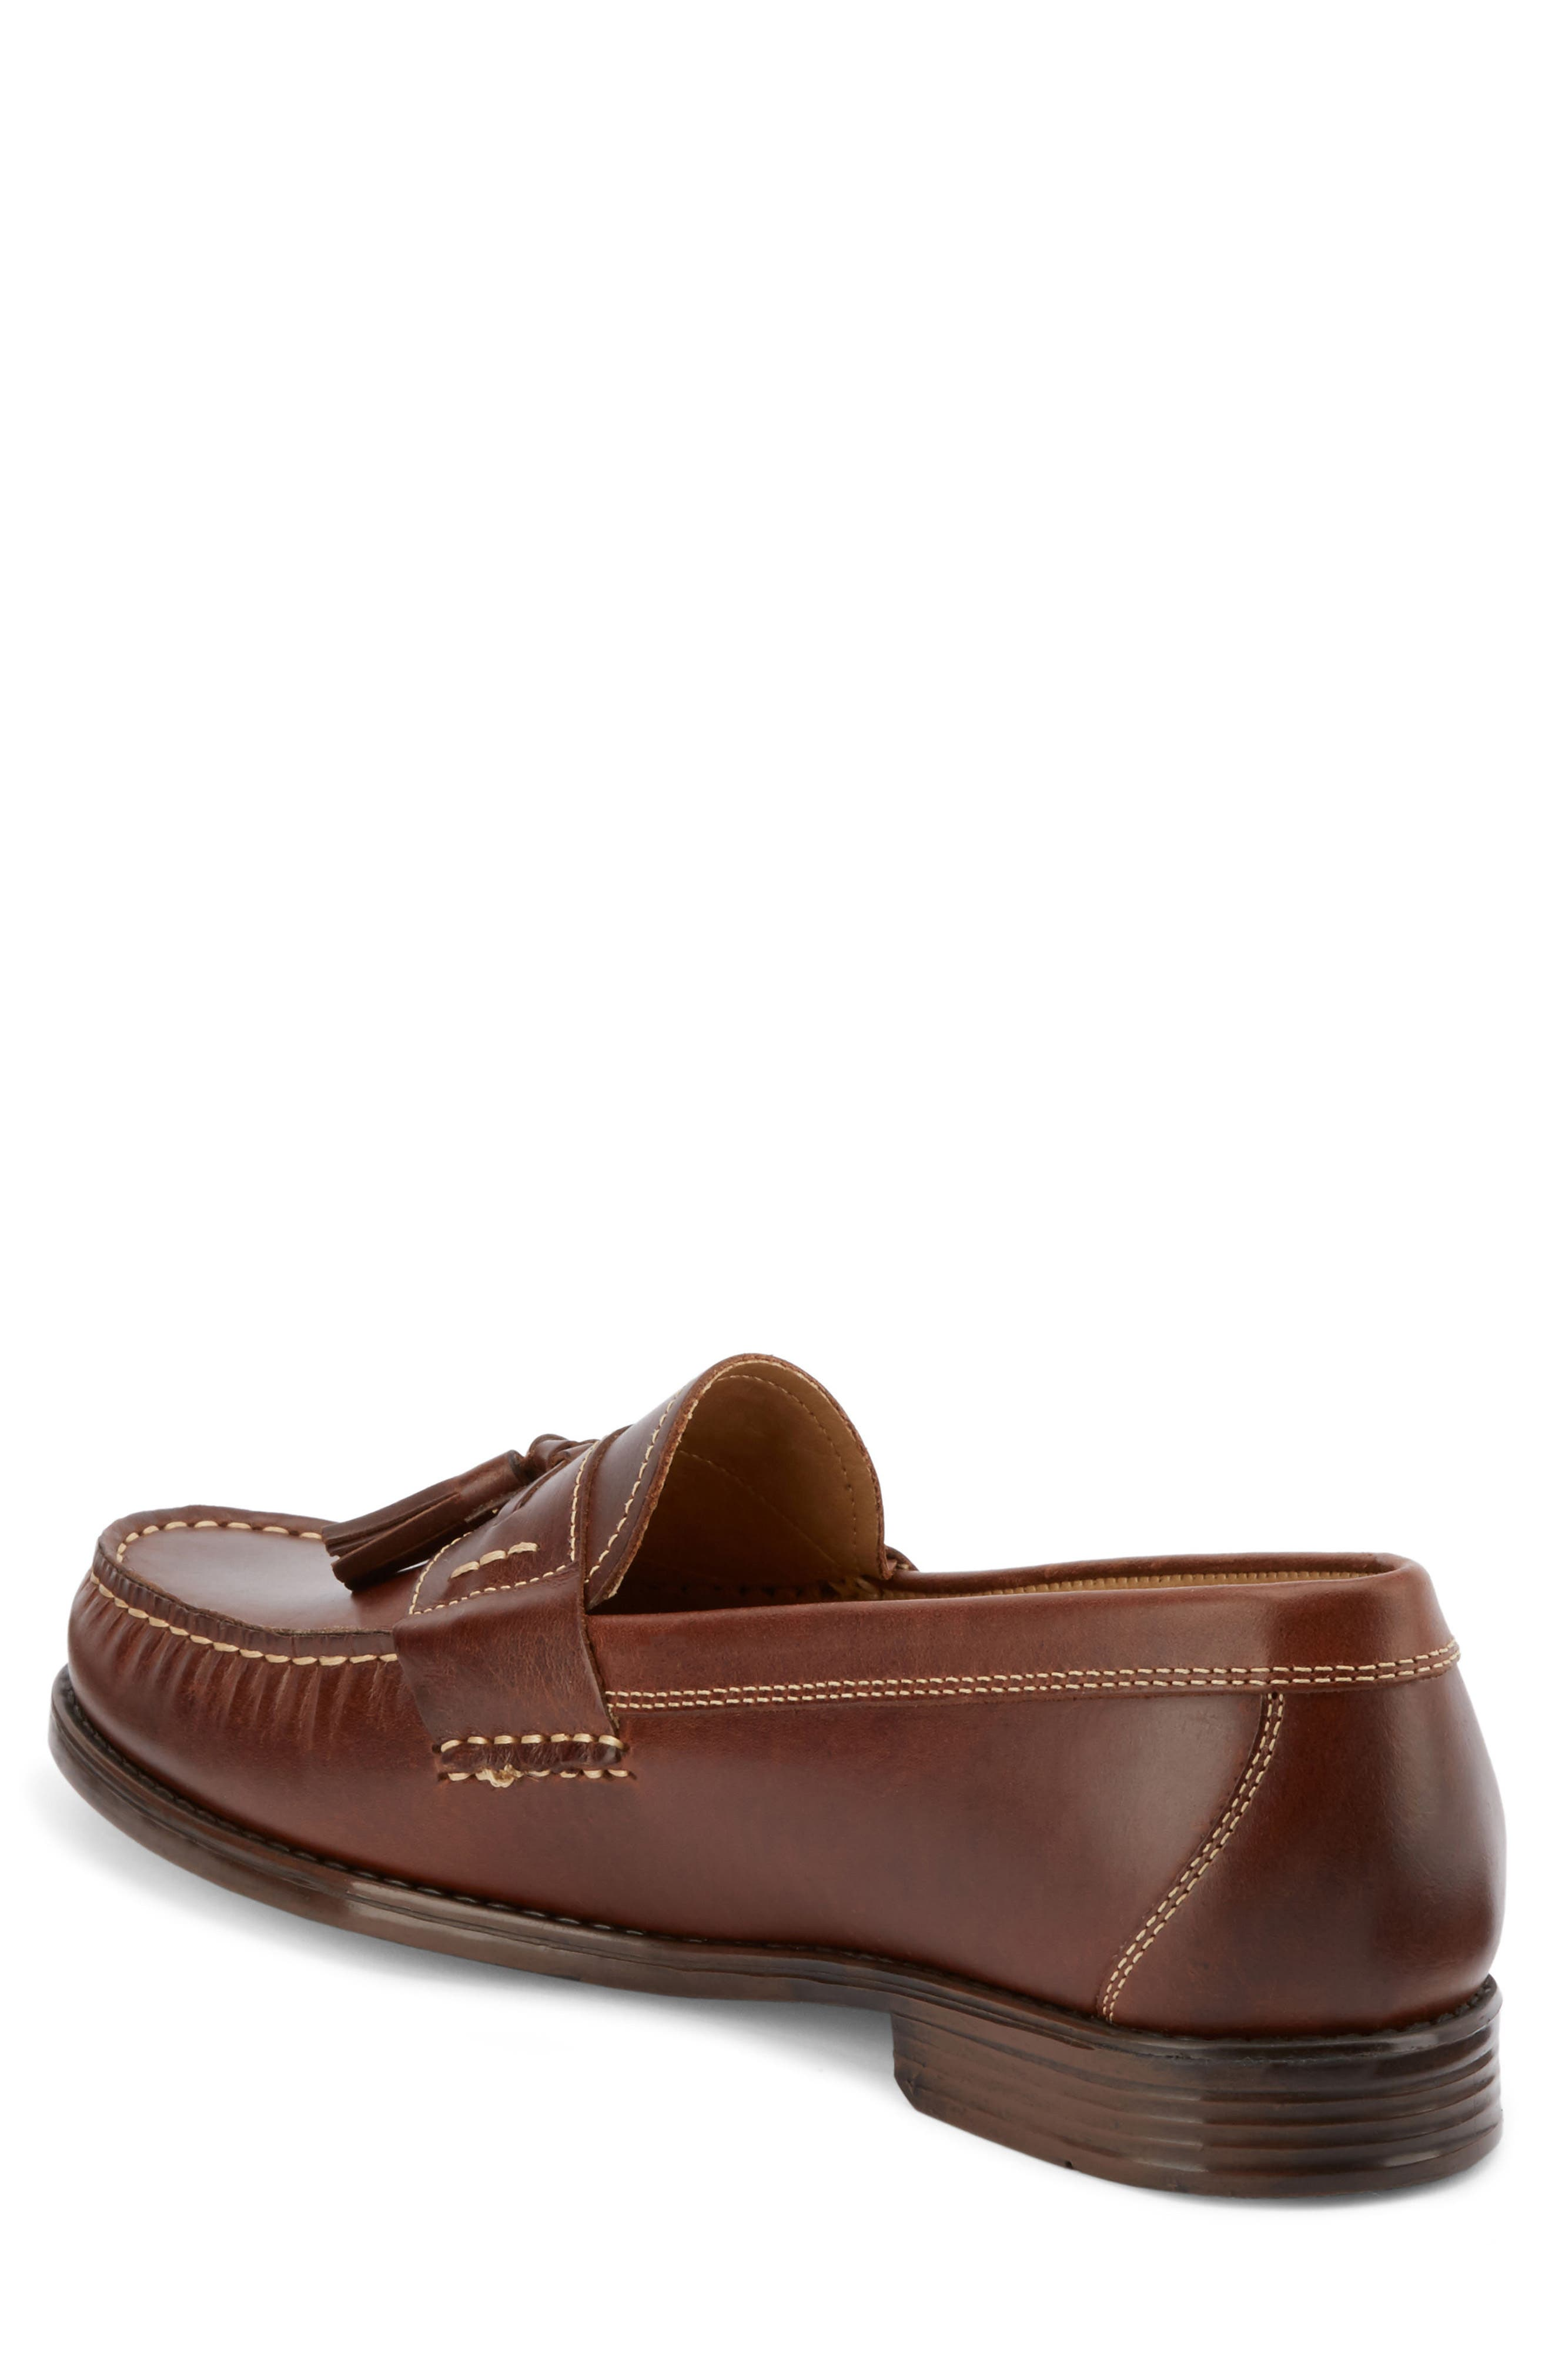 Wallace Tassel Loafer,                             Alternate thumbnail 2, color,                             DARK BROWN LEATHER